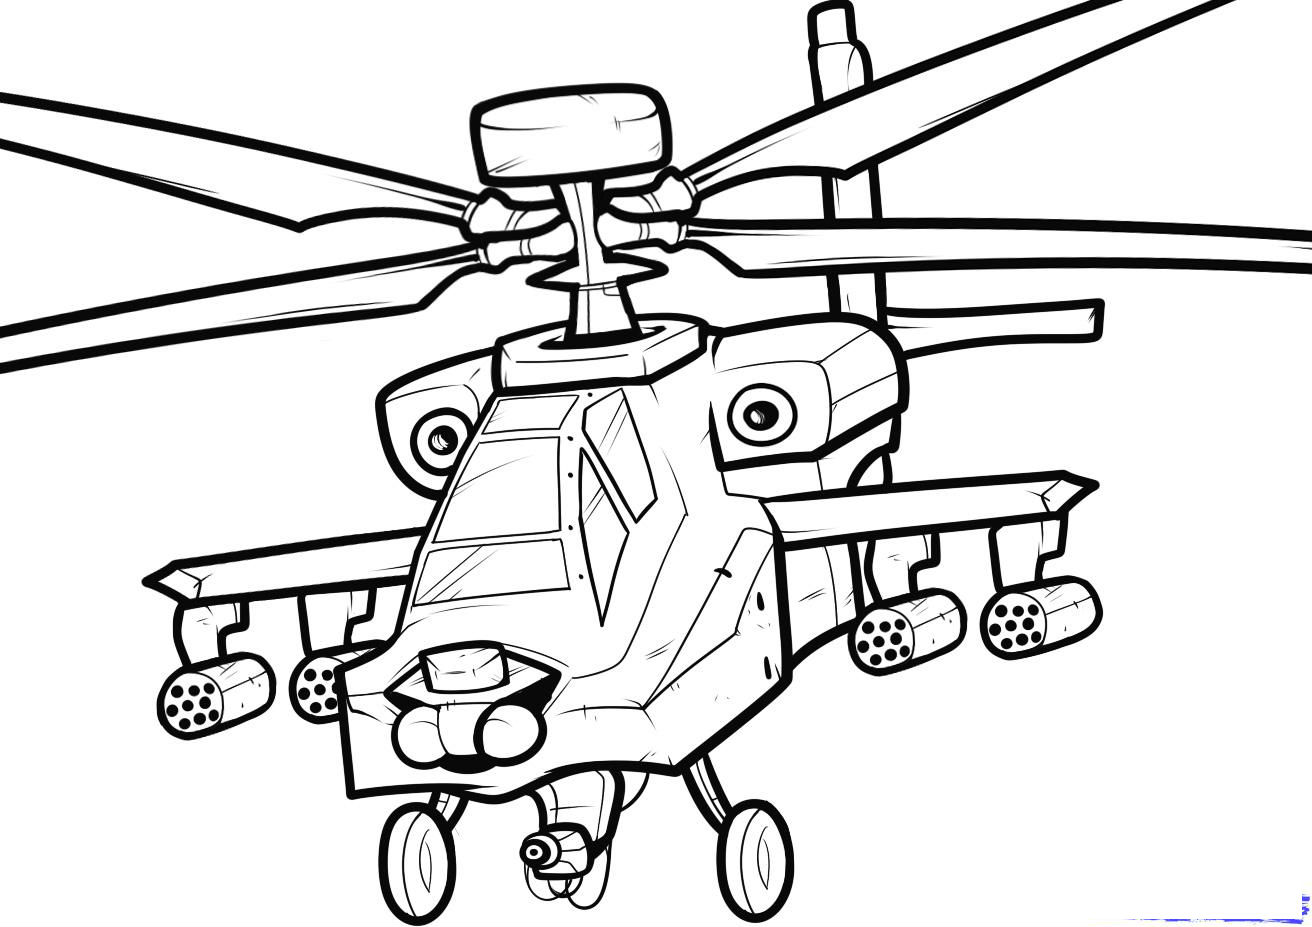 army helicopter coloring pages - photo#3